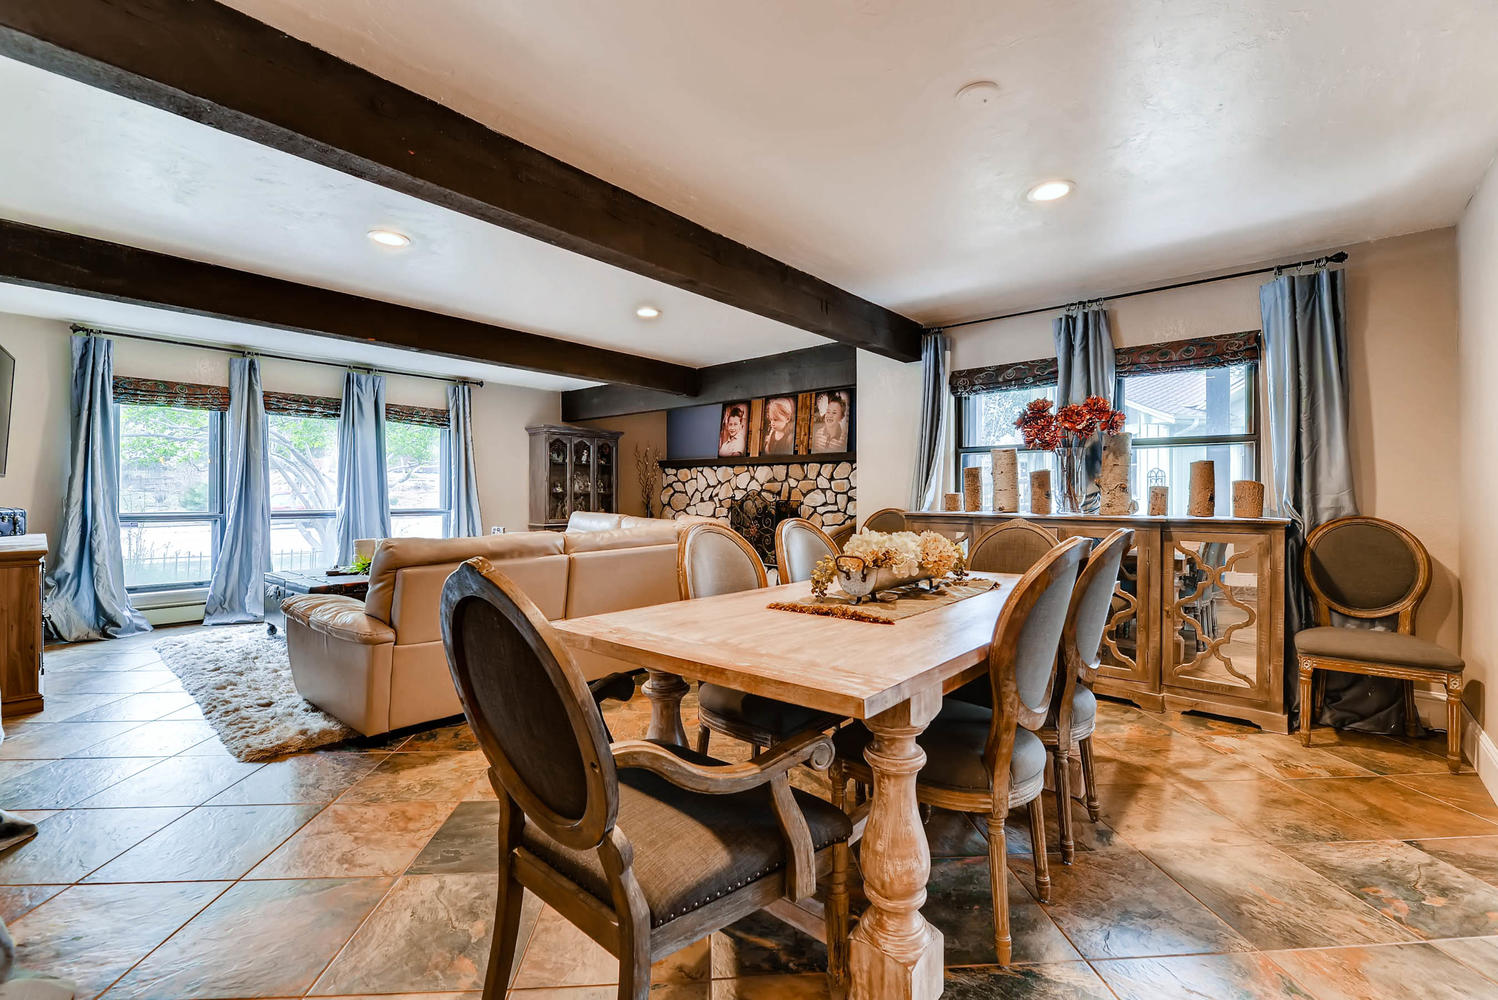 7135 Wintery Loop Colorado-large-001-2-Dining Room-1499x1000-72dpi.jpg